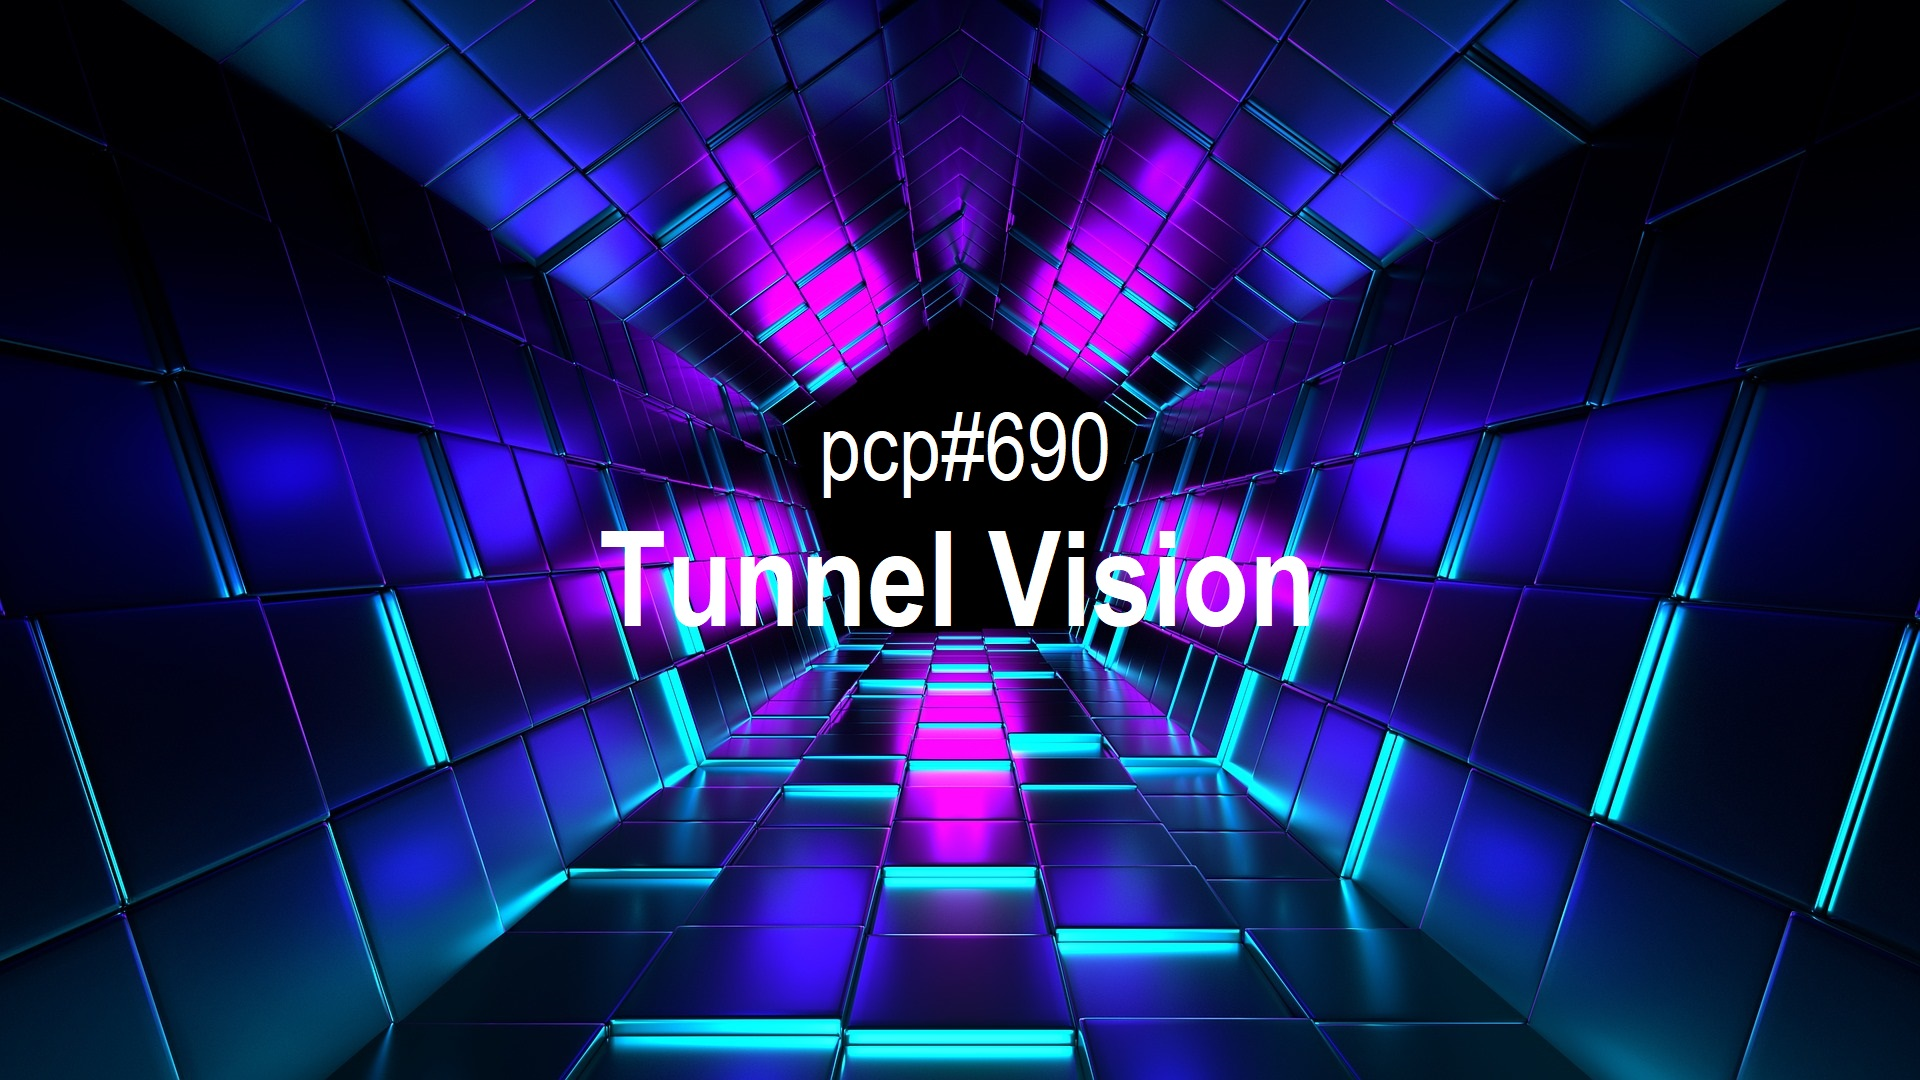 PCP#690... Tunnel Vision!